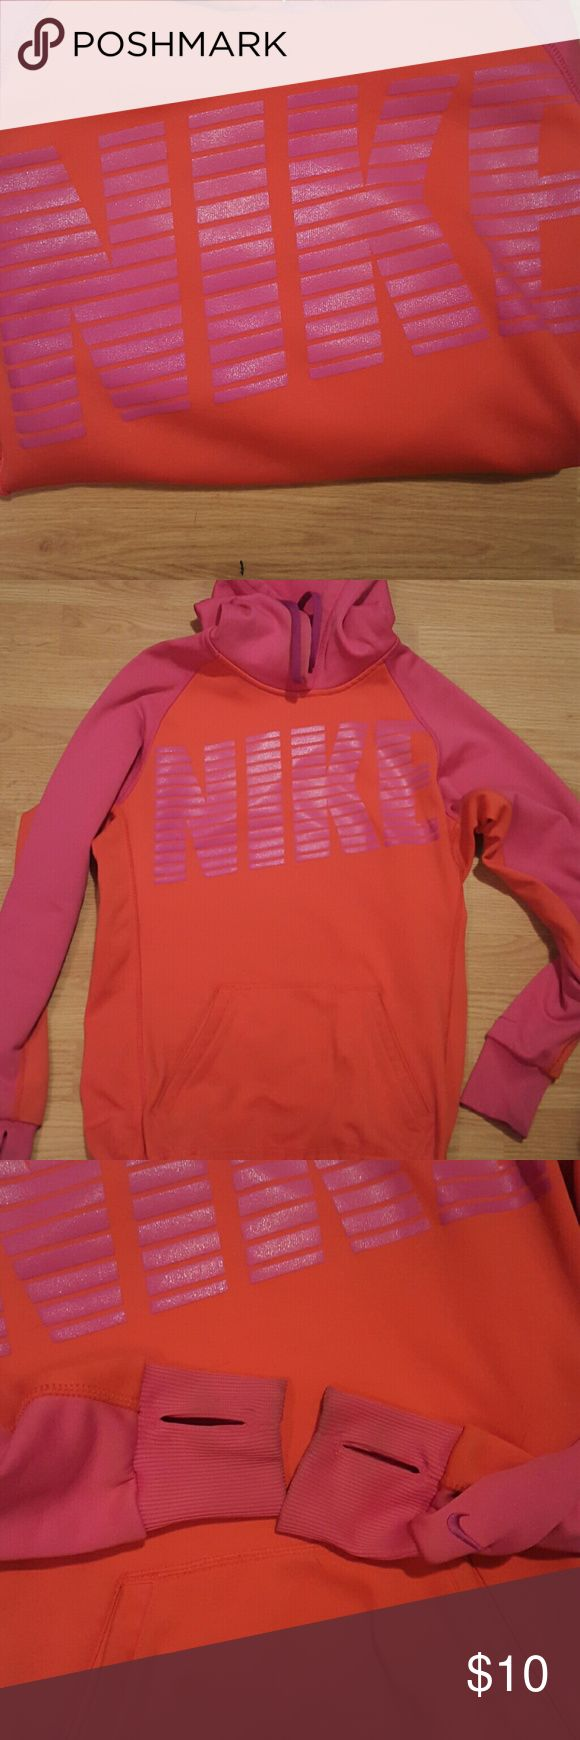 Nike hoodie Orange and pink, thermafit, size small, has thumbholes, a little wear on sleeves (pictured)-would come out with stain remover/bleach, otherwise excellent condition Nike Tops Sweatshirts & Hoodies